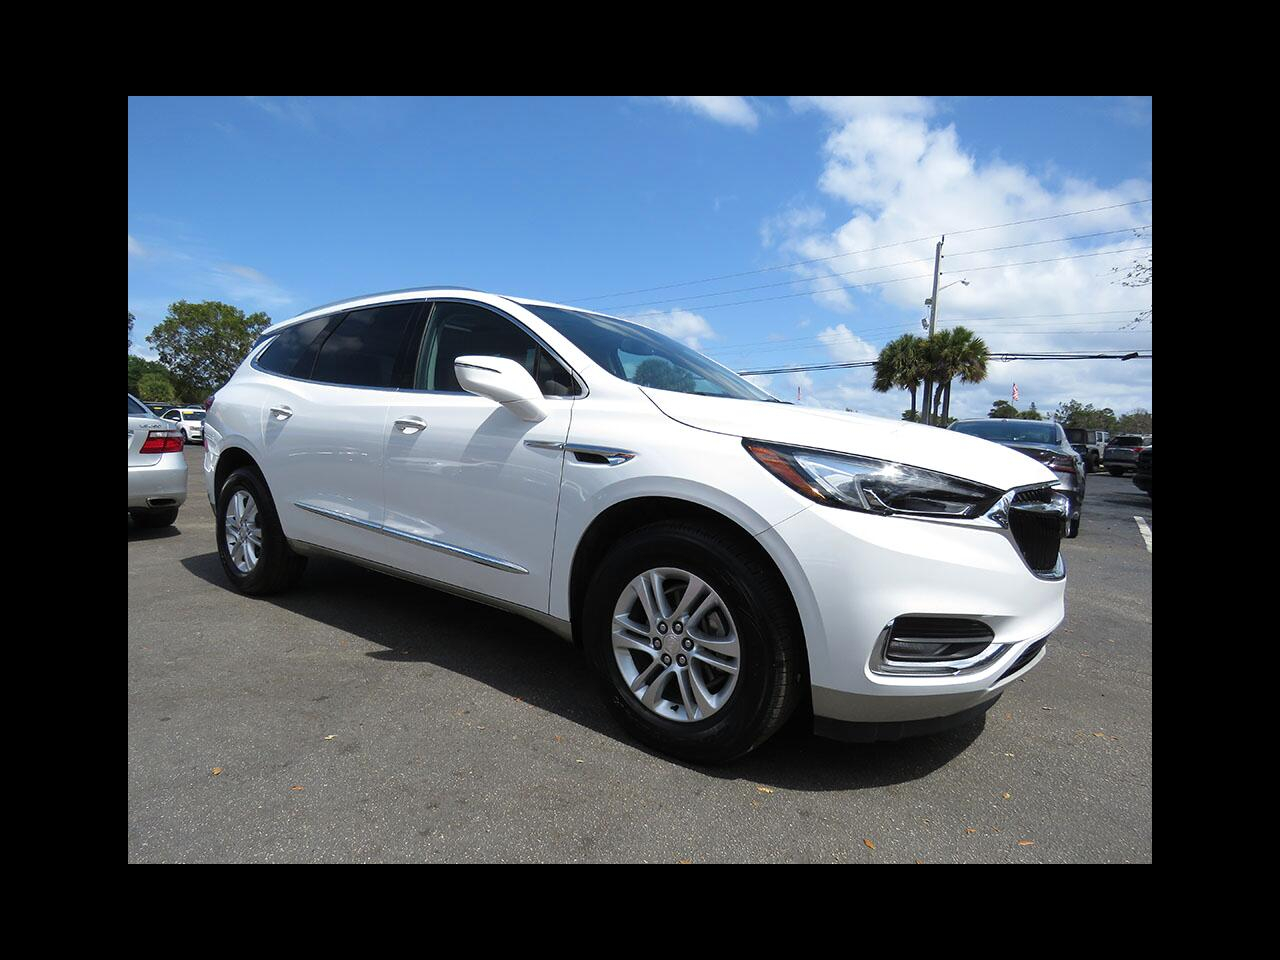 Used 2020 Buick Enclave Essence For Sale In Pompano Beach Fl 2022 Buick Enclave Price, Pictures, Brochure